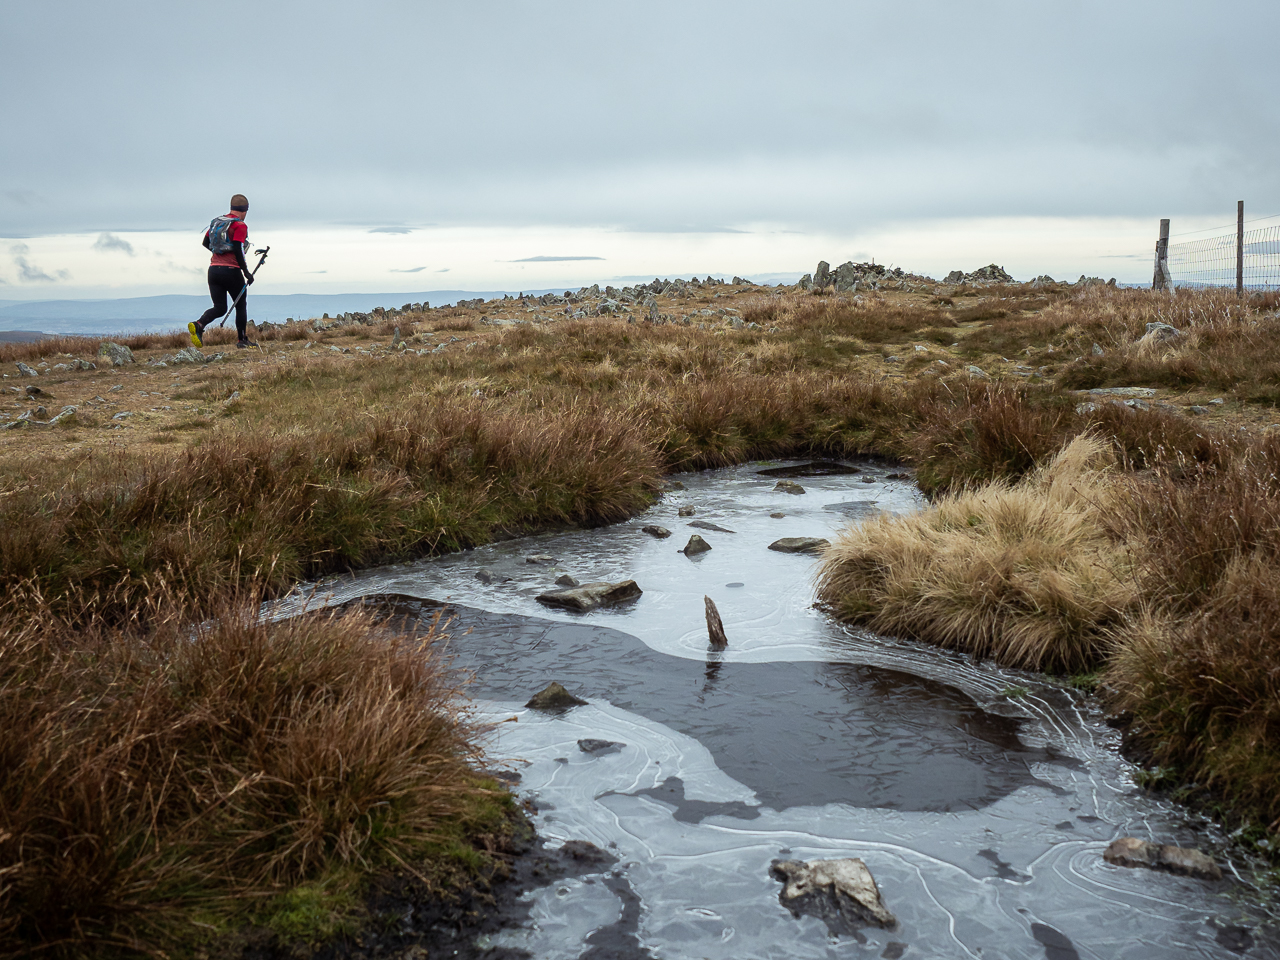 Kentmere Horseshoe: A fell runner dashes past a frozen pond near Harter Fell, in the Lake District, Cumbria, England.